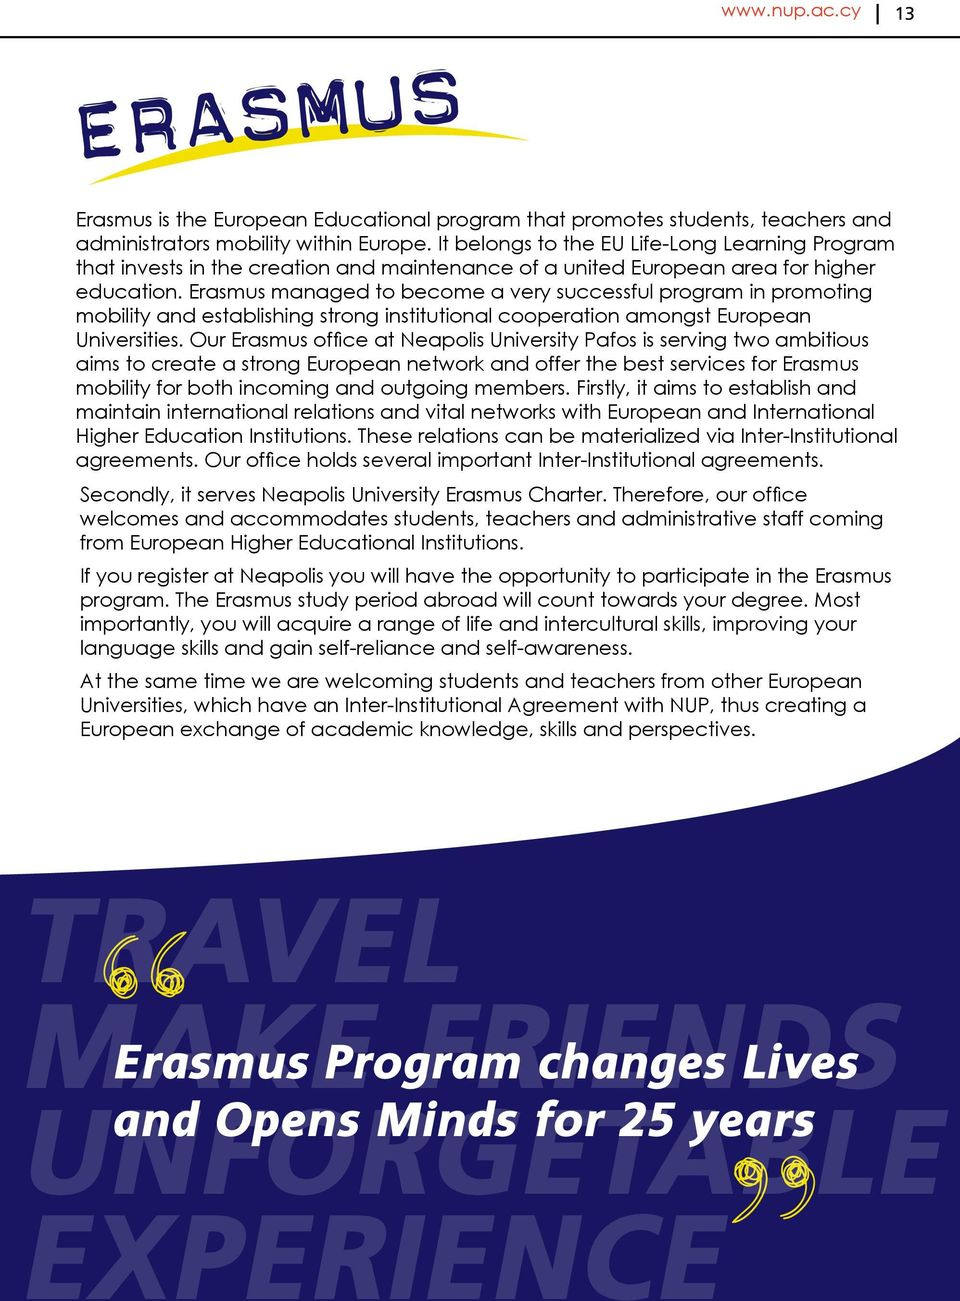 Erasmus managed to become a very successful program in promoting mobility and establishing strong institutional cooperation amongst European Universities.